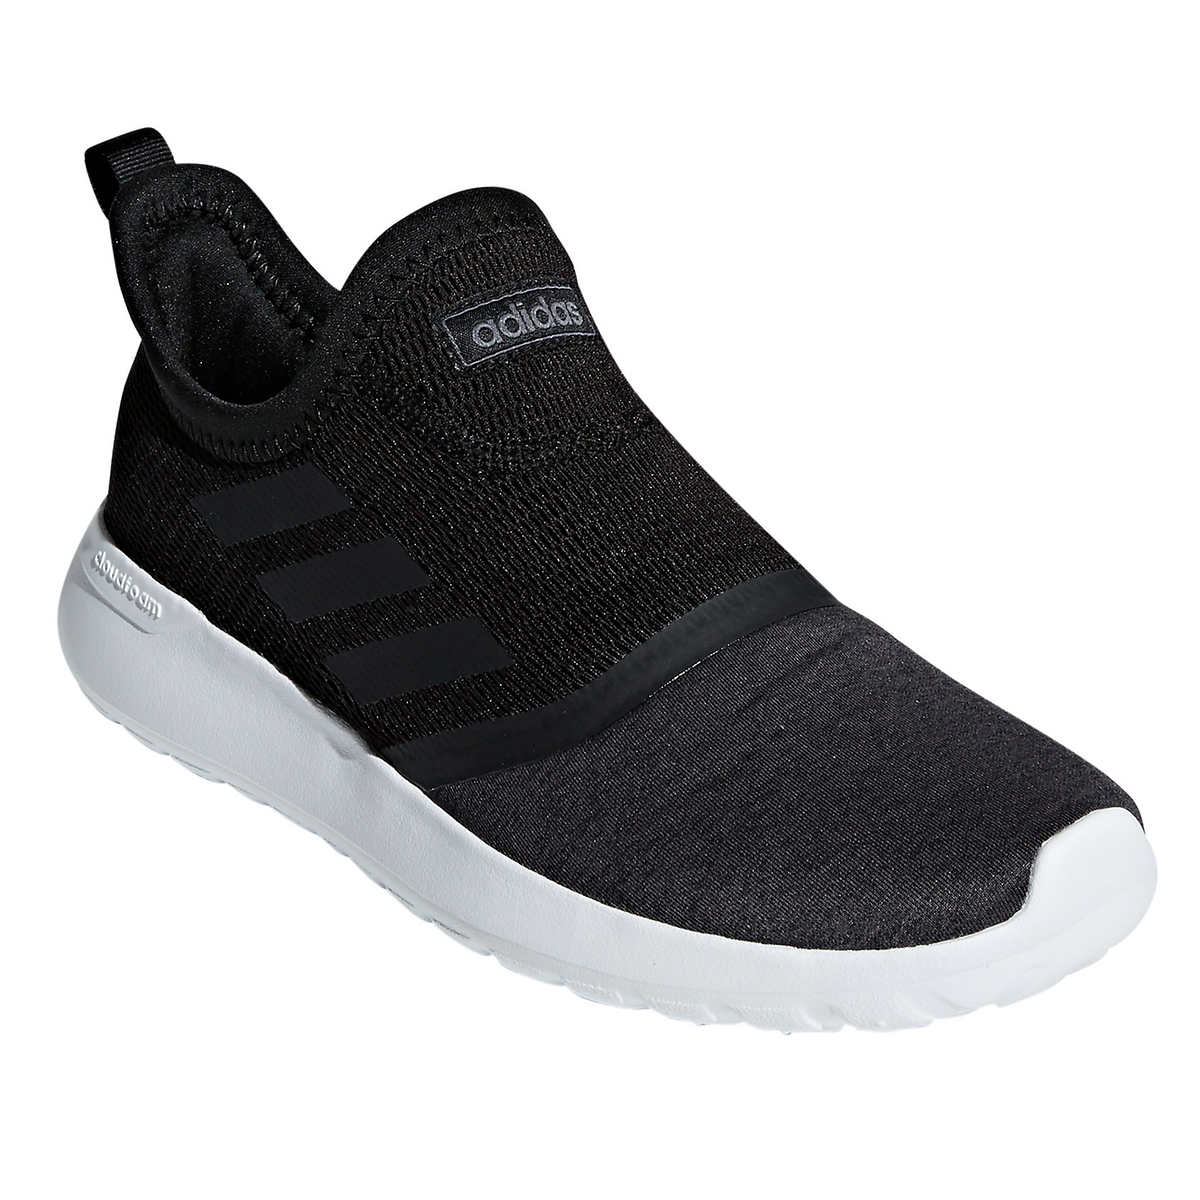 e3f0e182f6585 adidas Ladies' Slip-On Shoe